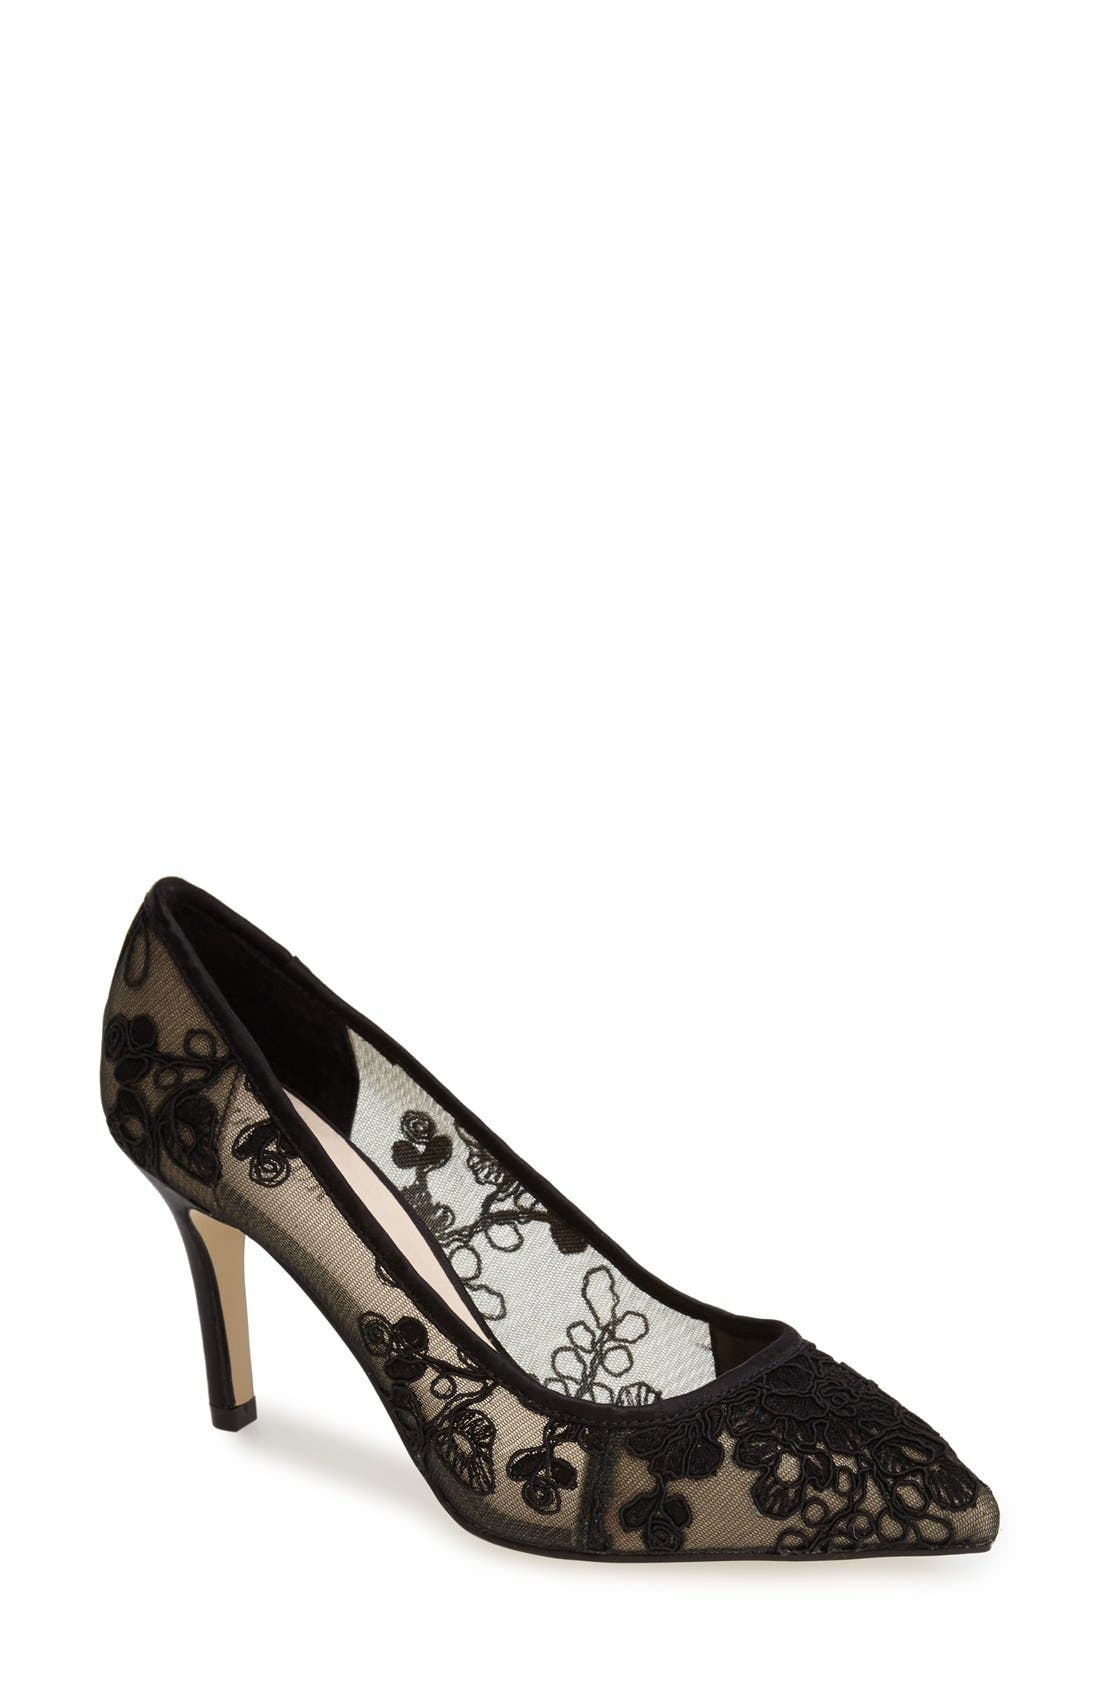 Main Image - Menbur 'Delavigne' Lace Pump (Women)